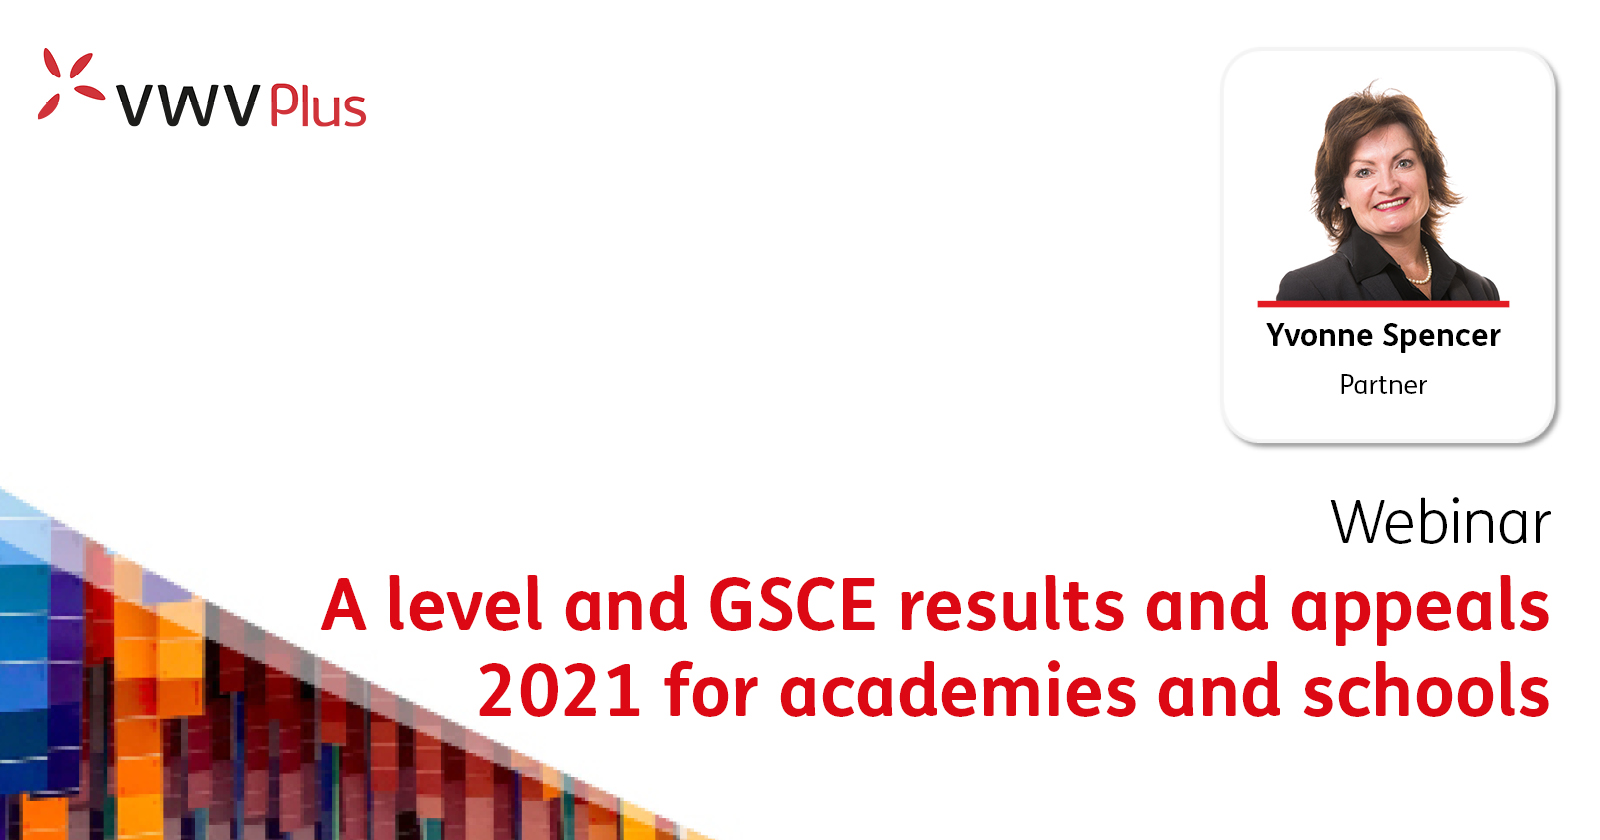 A level and GCSE results and appeals 2021for academies